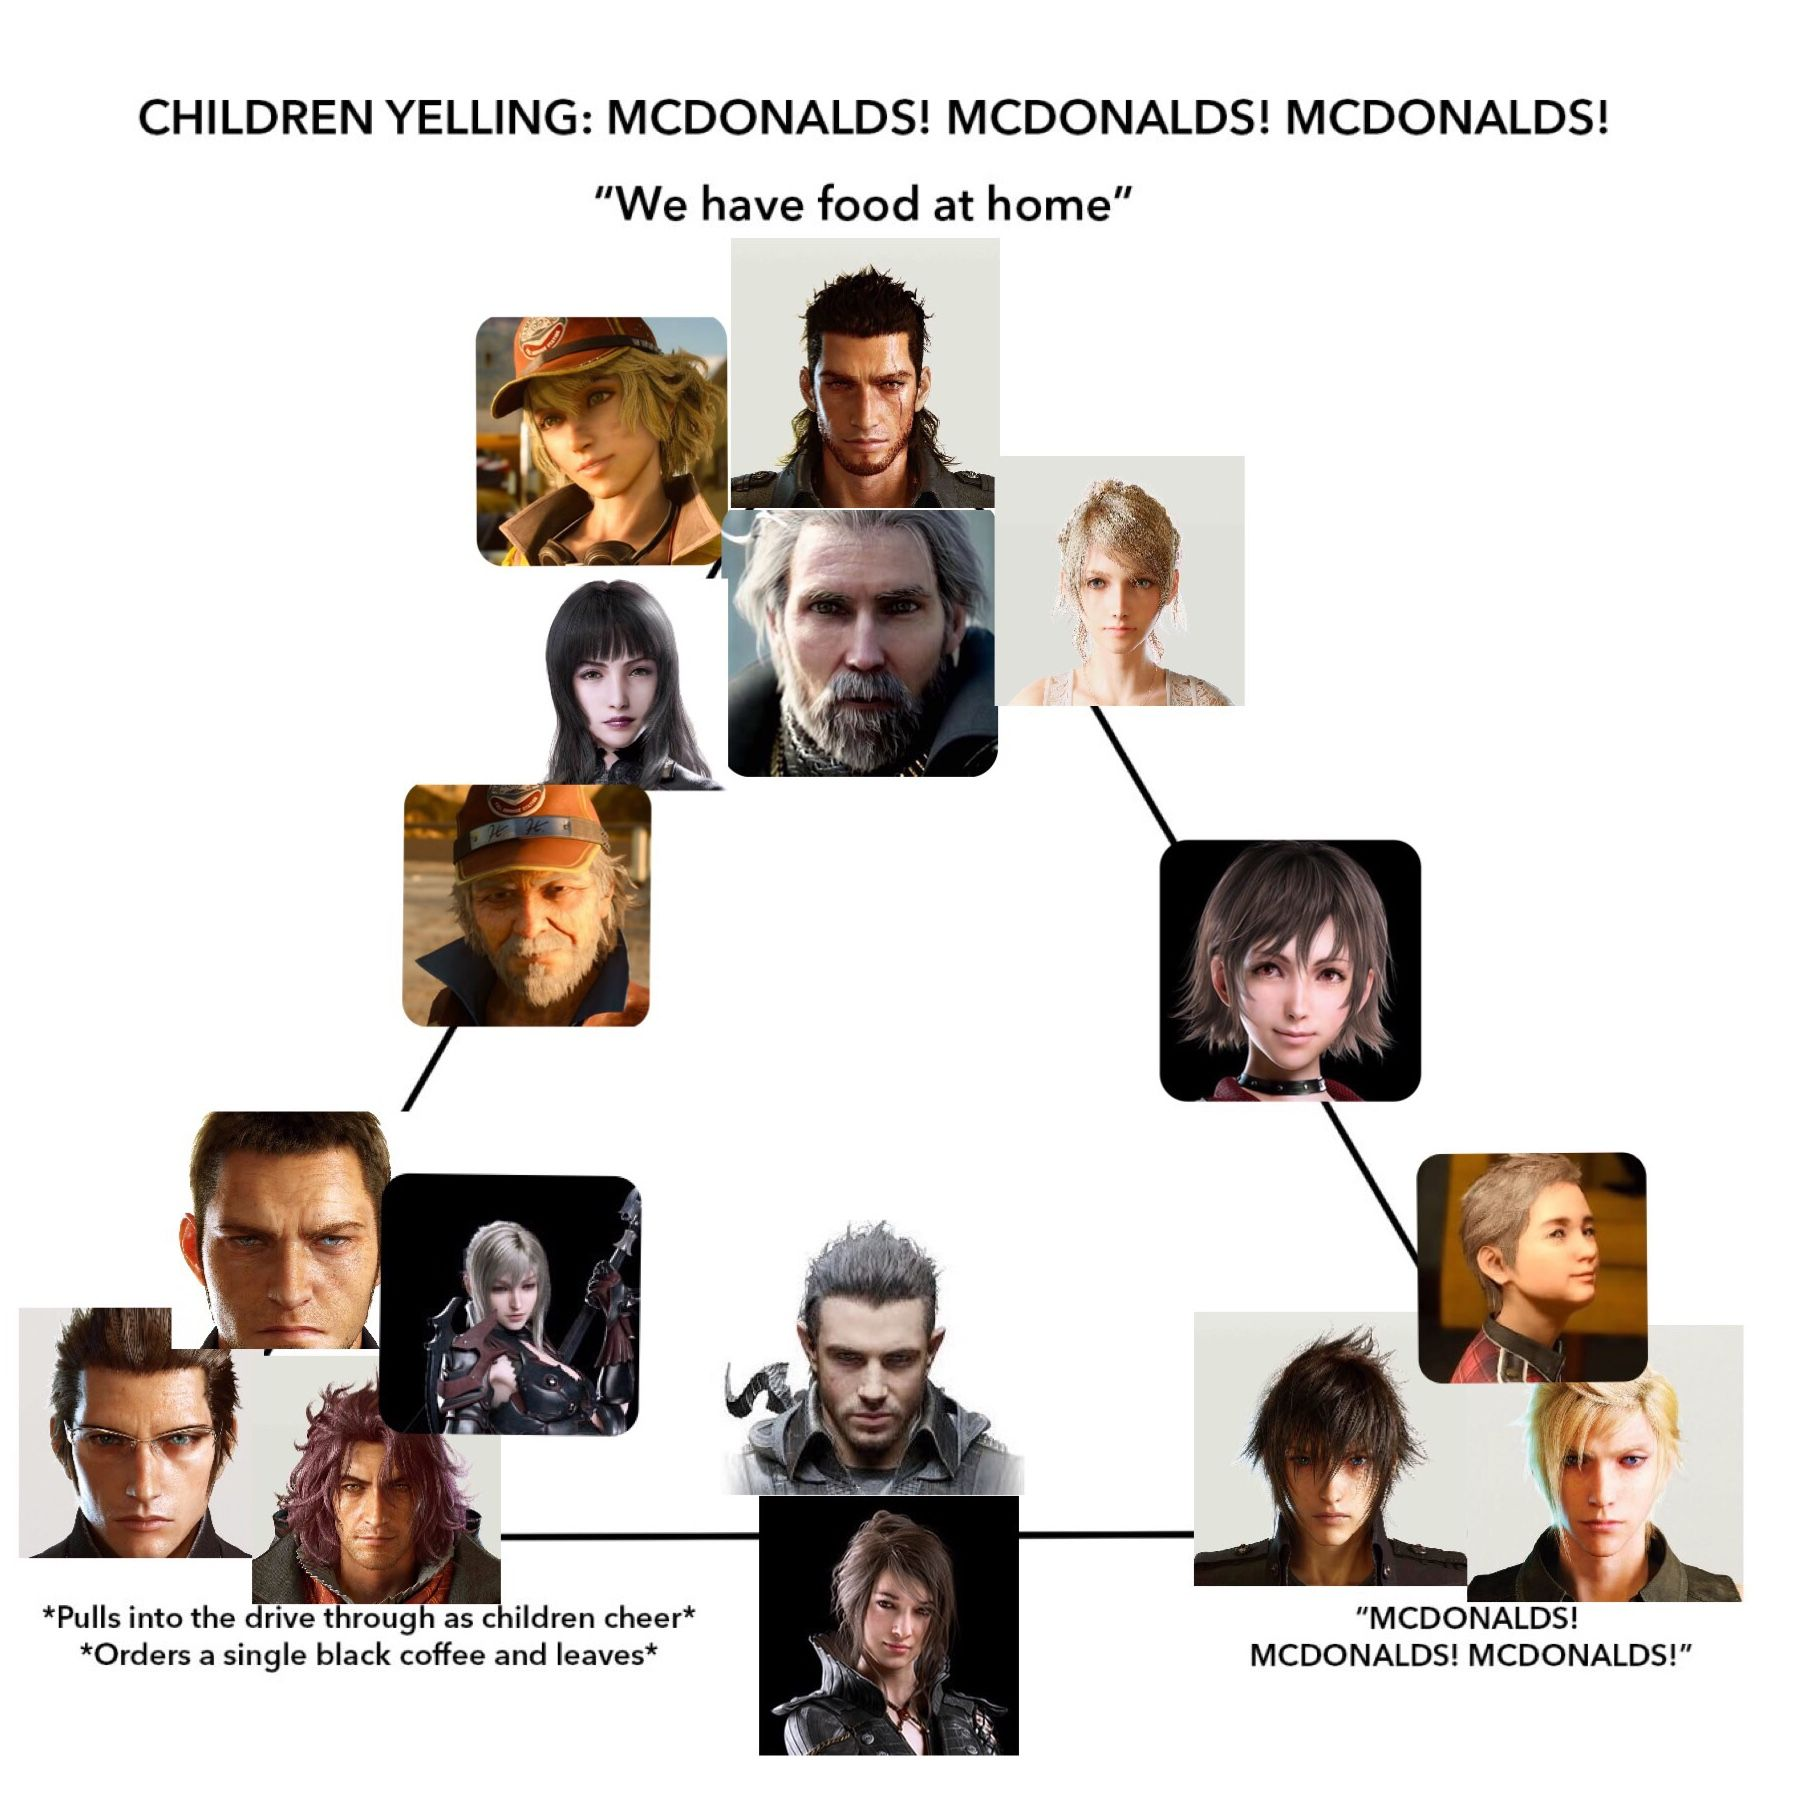 Me FFXV is such an amazing game, I should really stop